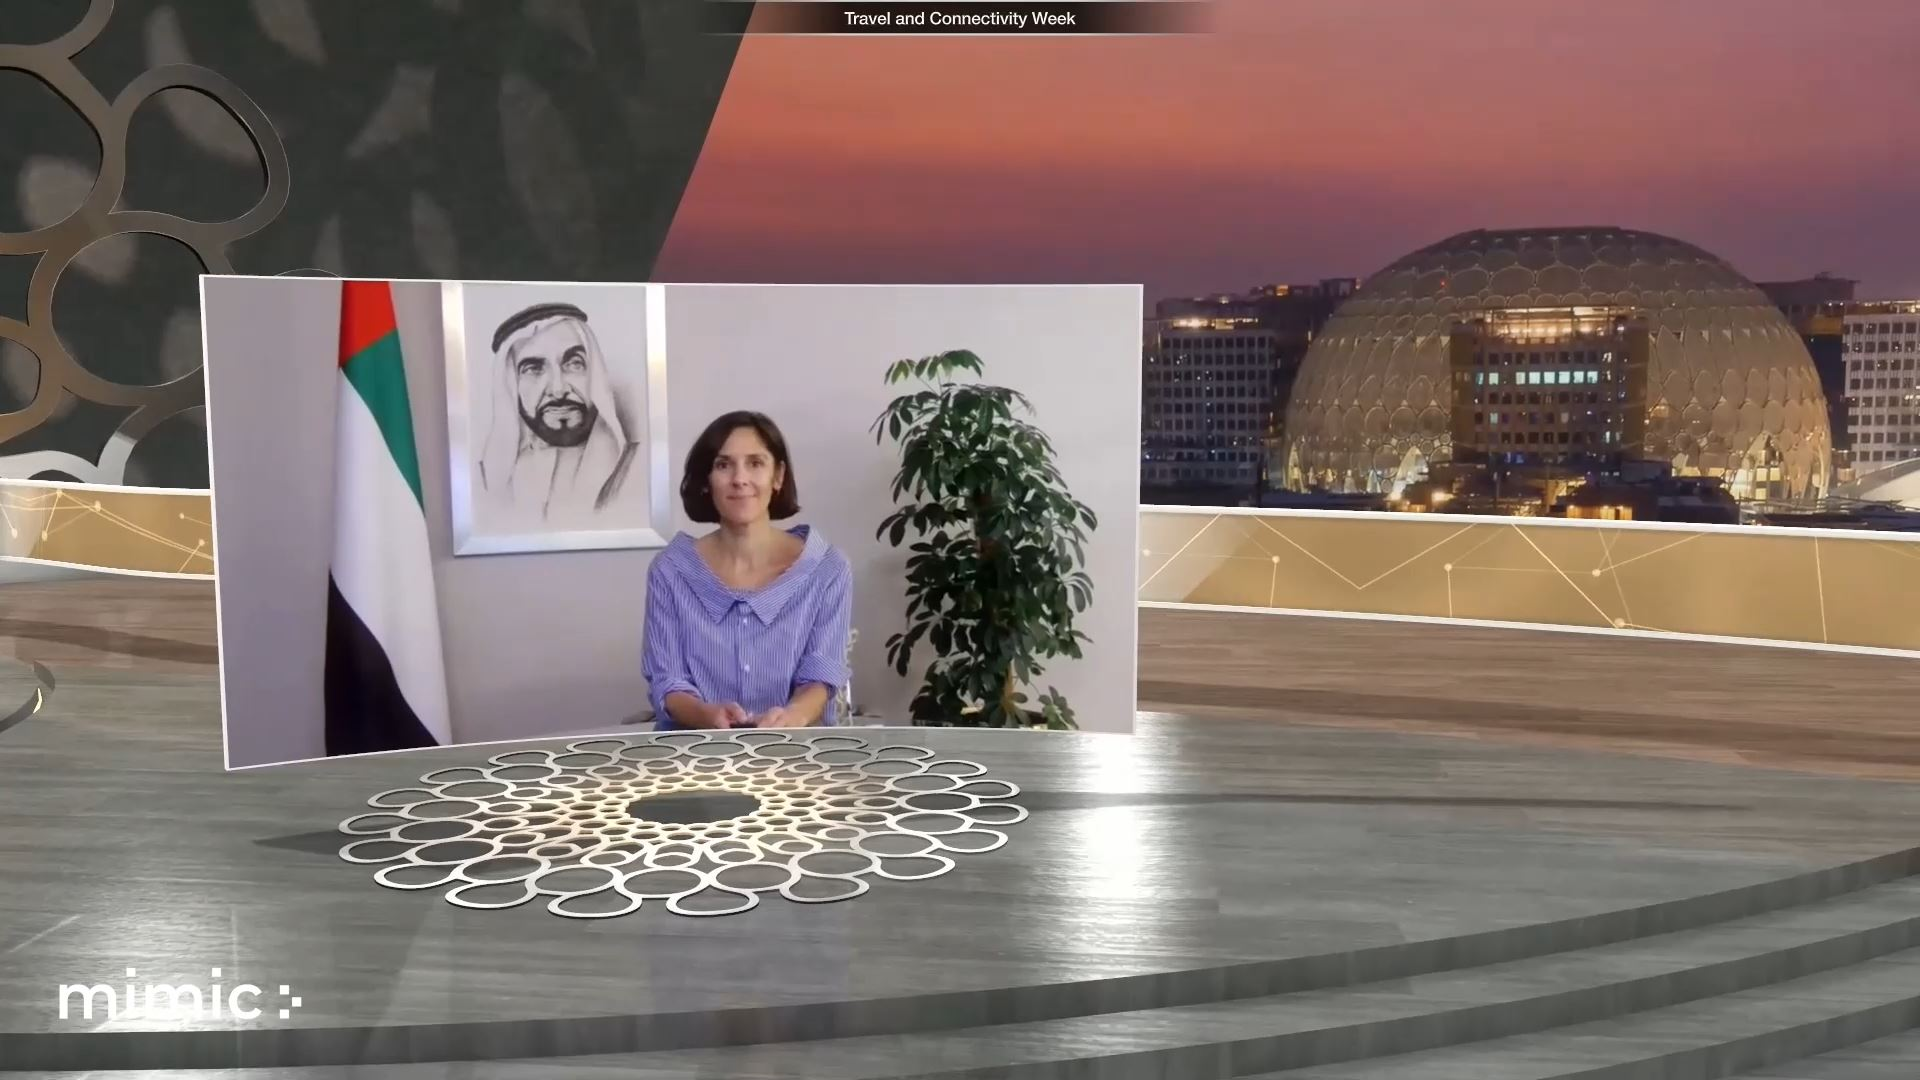 expo 2020 travel and connectivity week virtual event virtual host